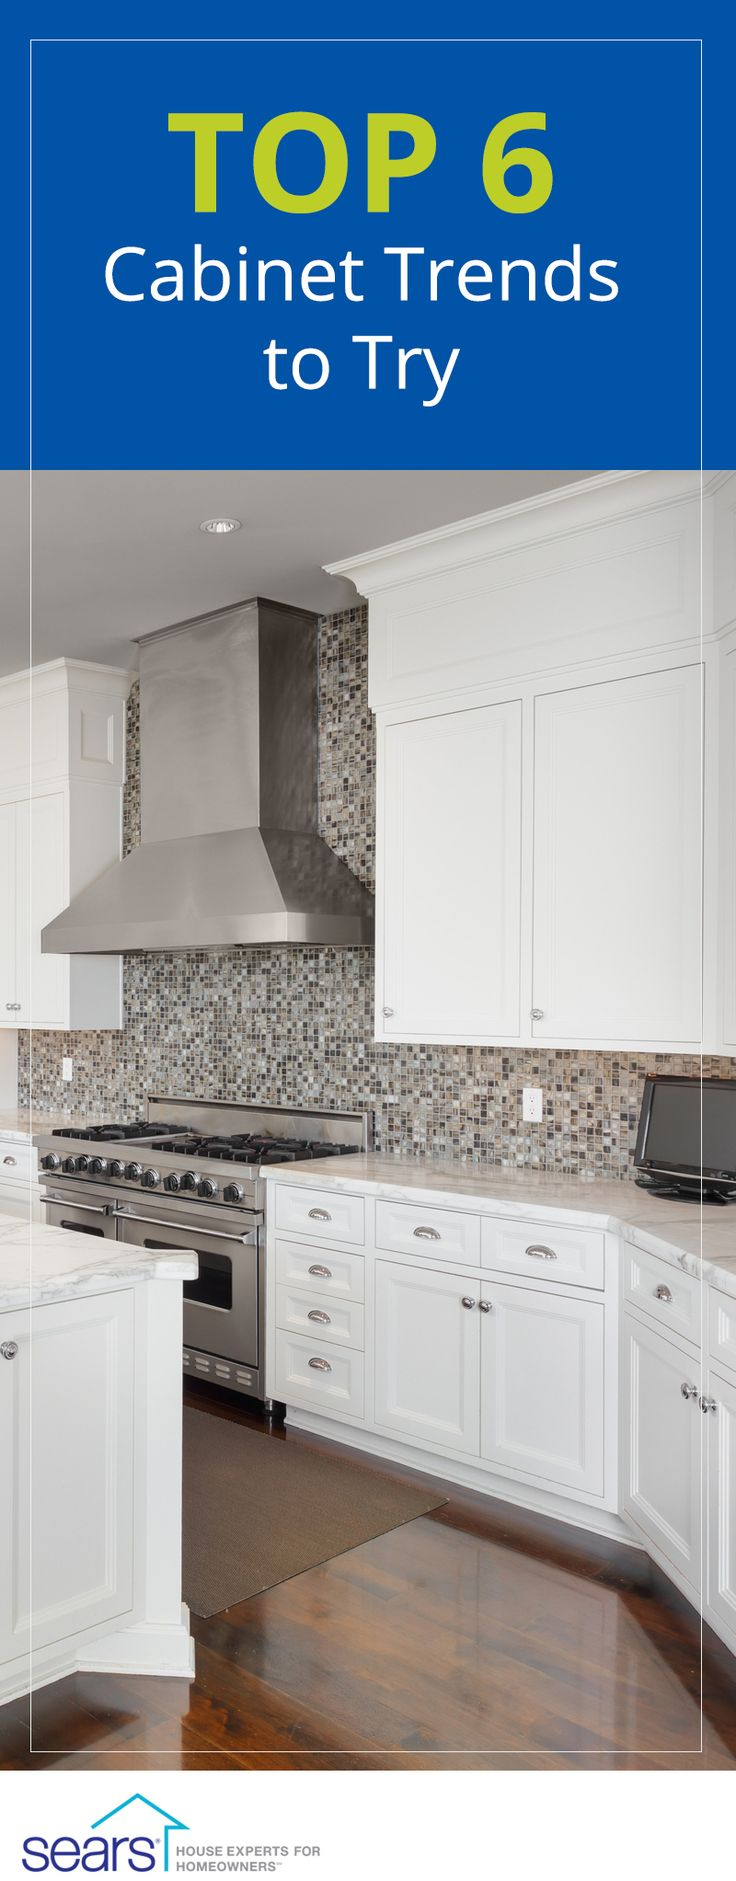 Top 6 Cabinet Trends To Try What S Hot In Kitchen And Bath Design From